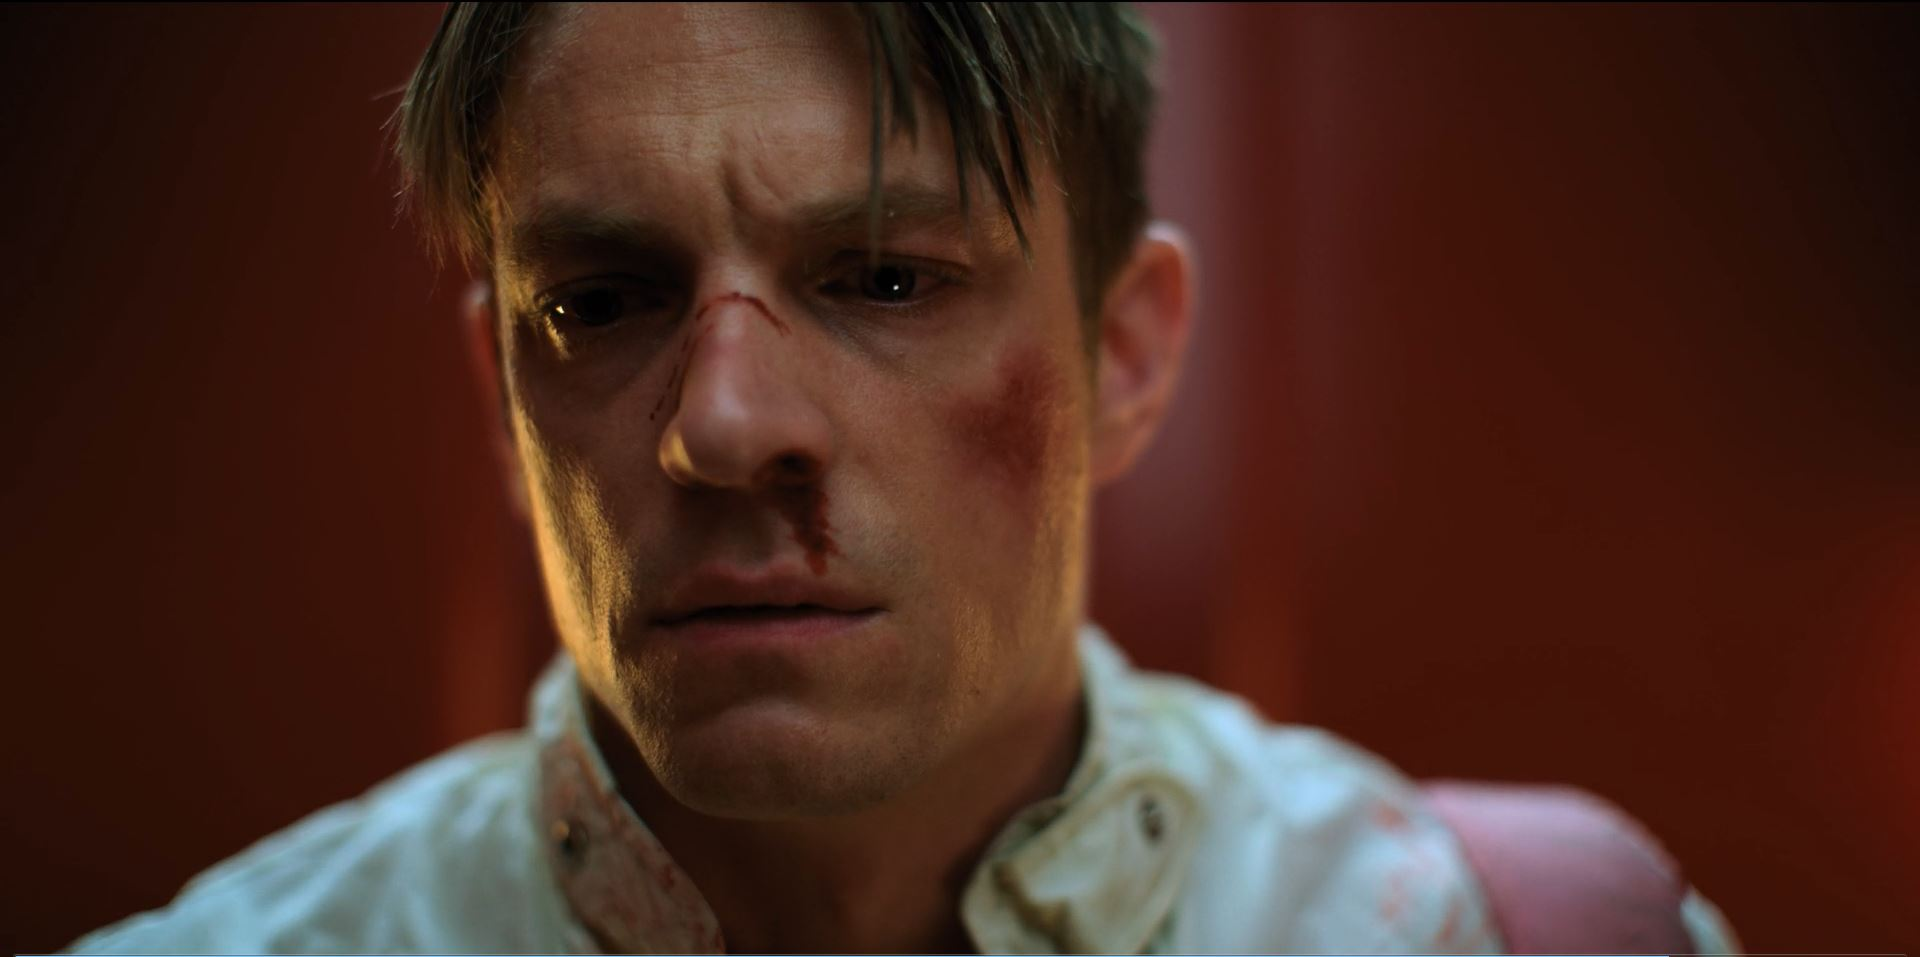 Altered Carbon - Takeshi Kovacs (Joel Kinnaman)